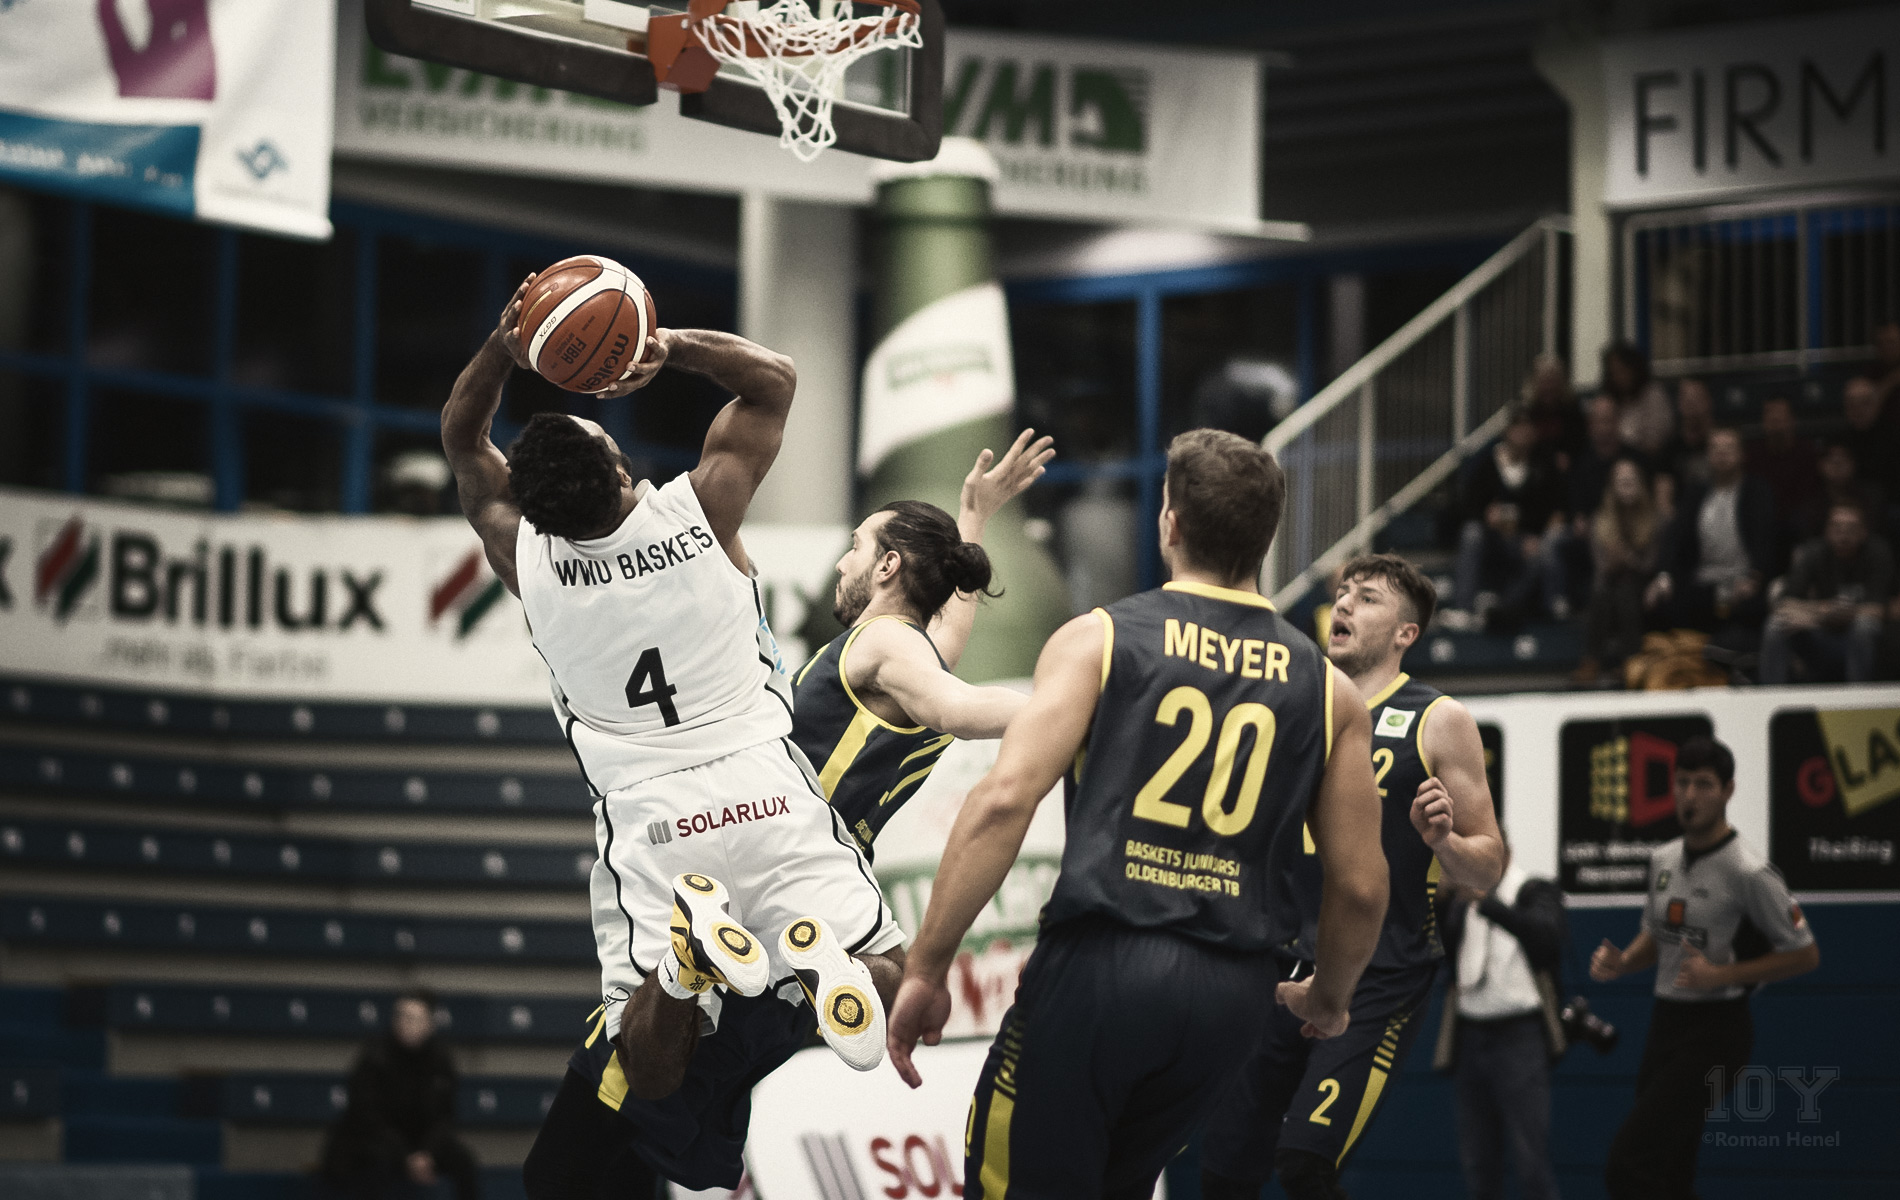 WWU Baskets Münster, 2 Bundesliga Basketball